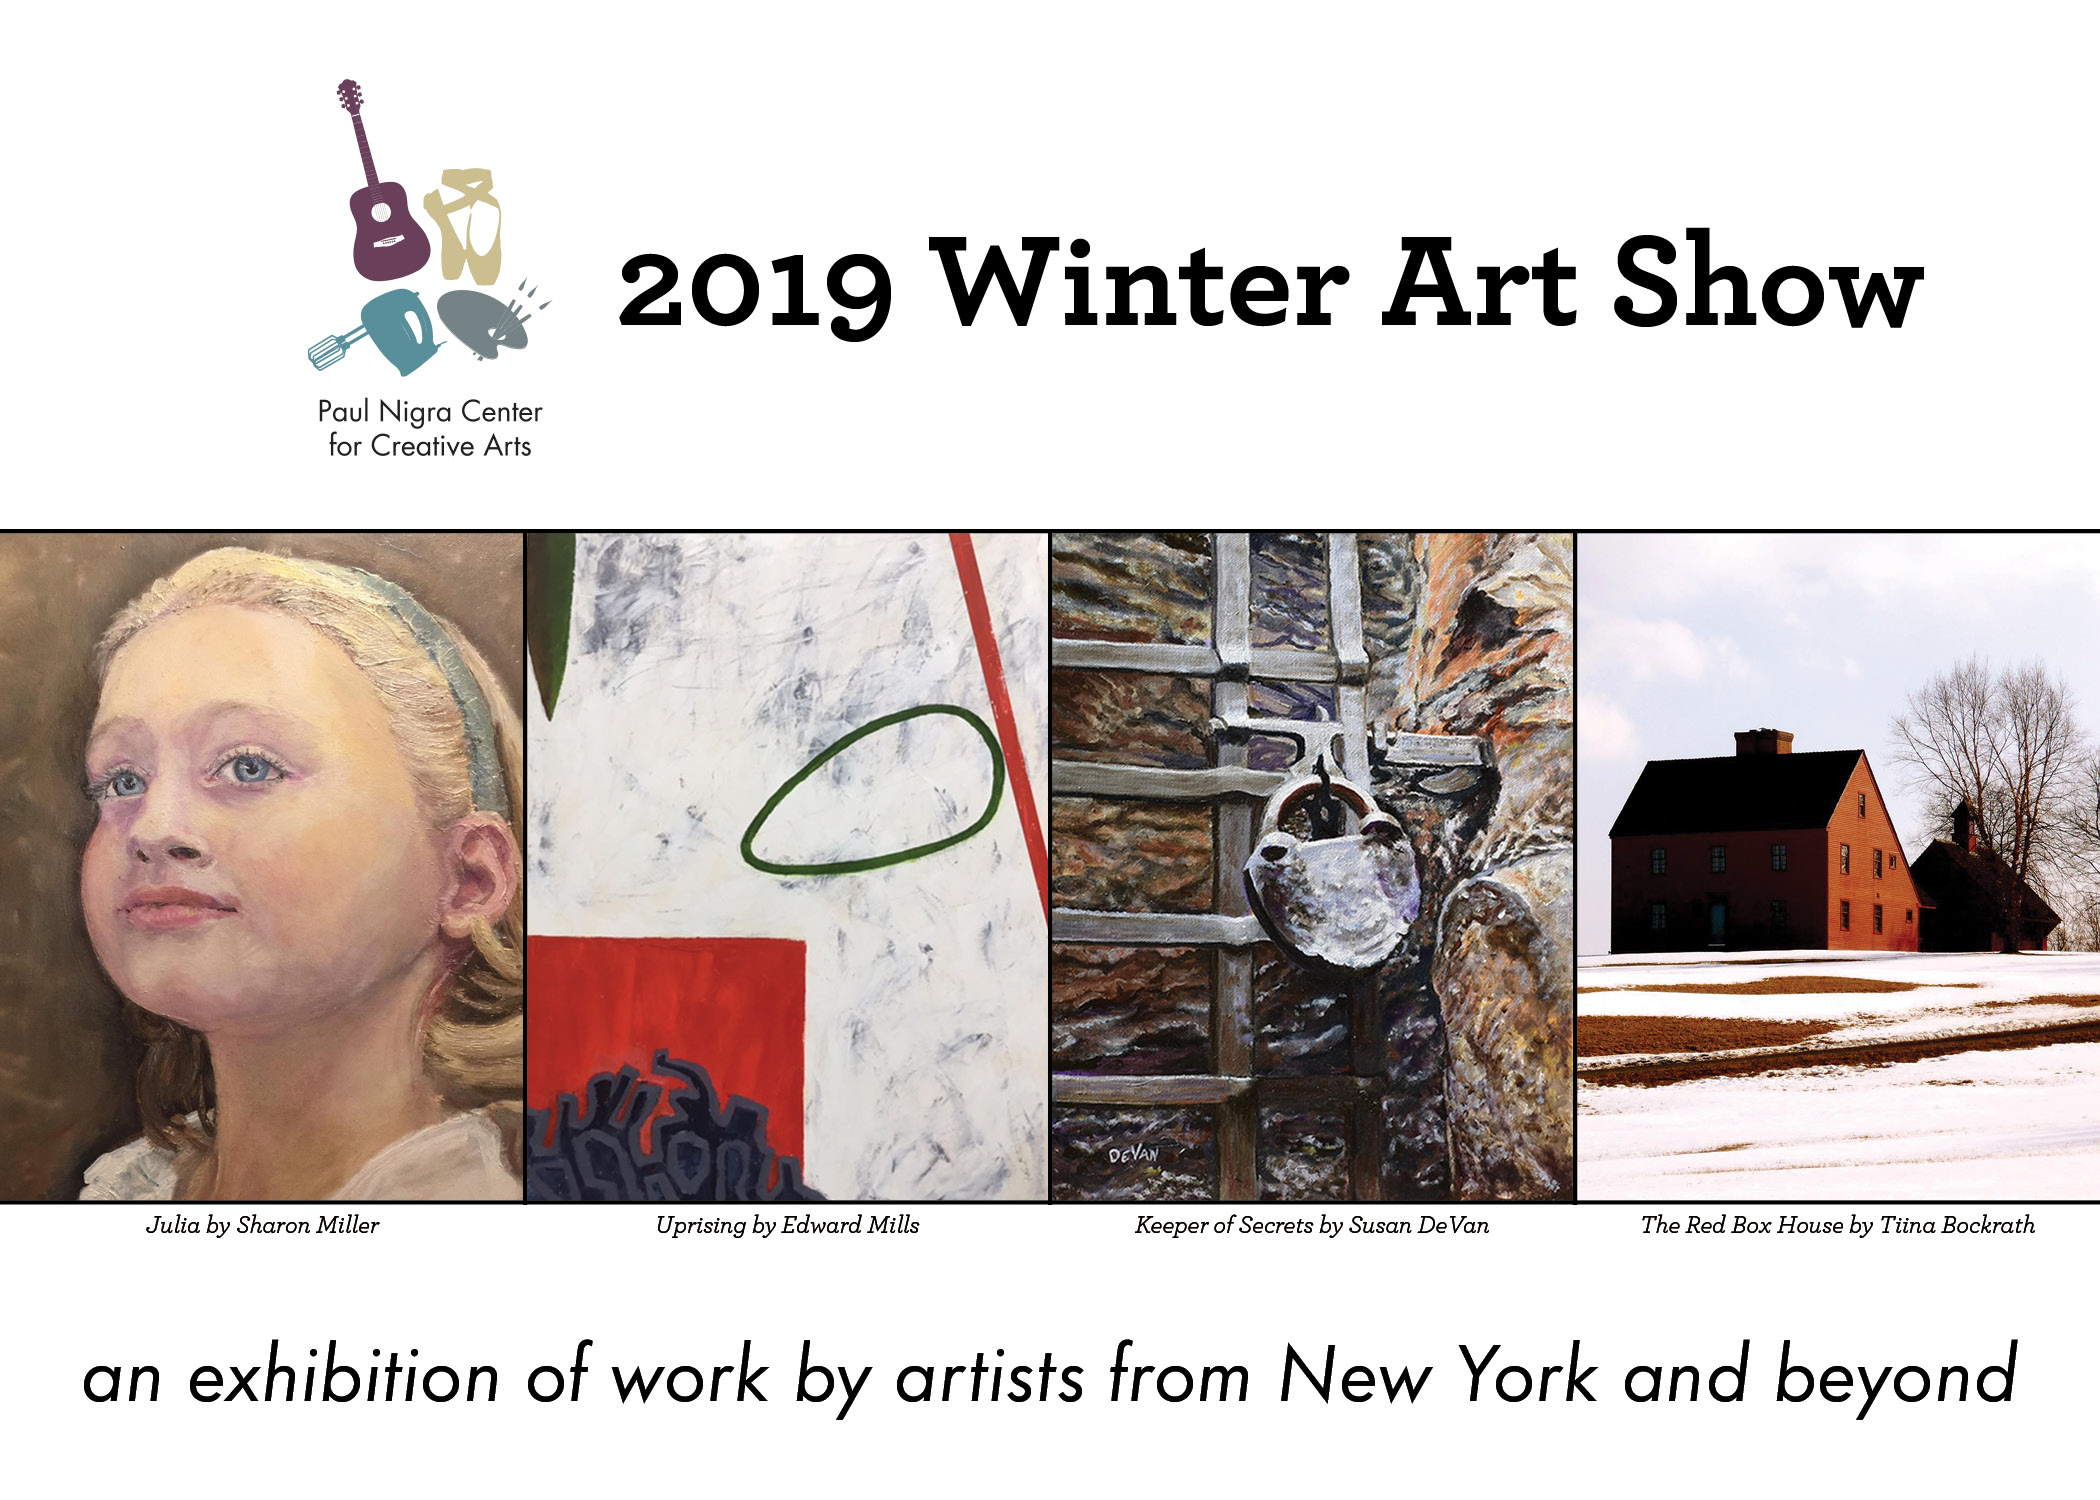 2019 Winter Art Show Postcard.jpg